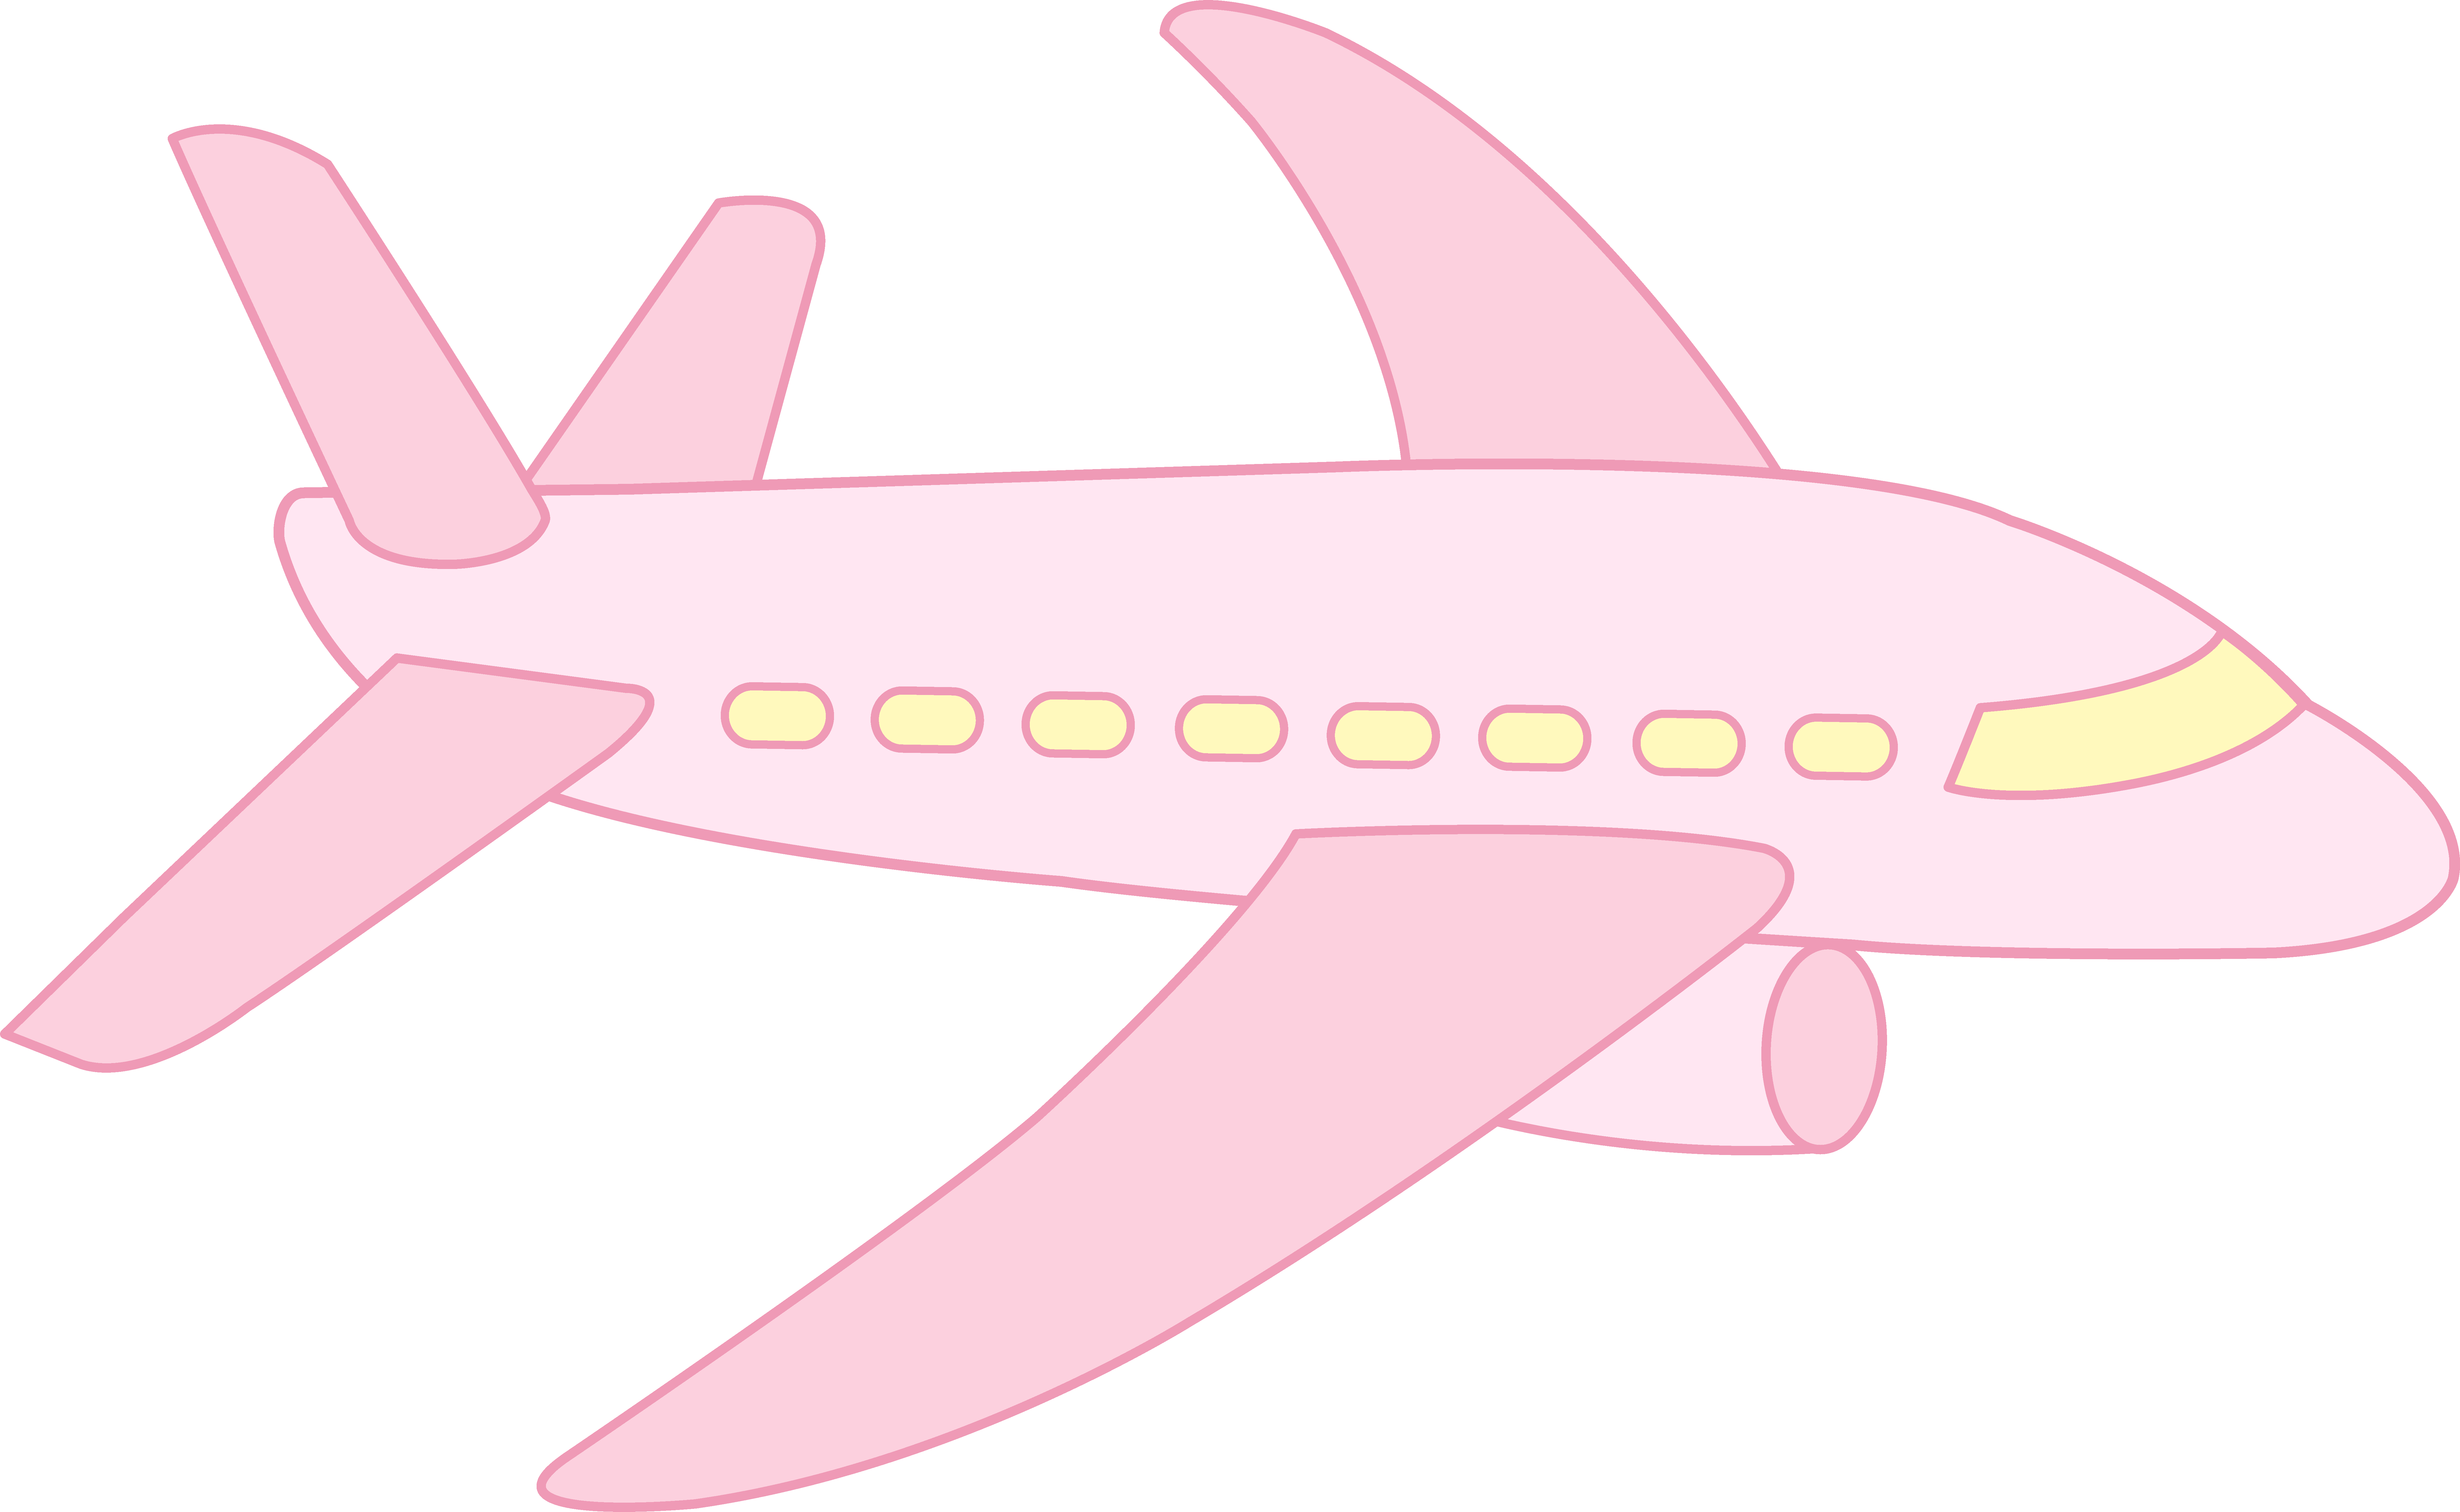 hight resolution of cute airplane cute pink airplane free clip art